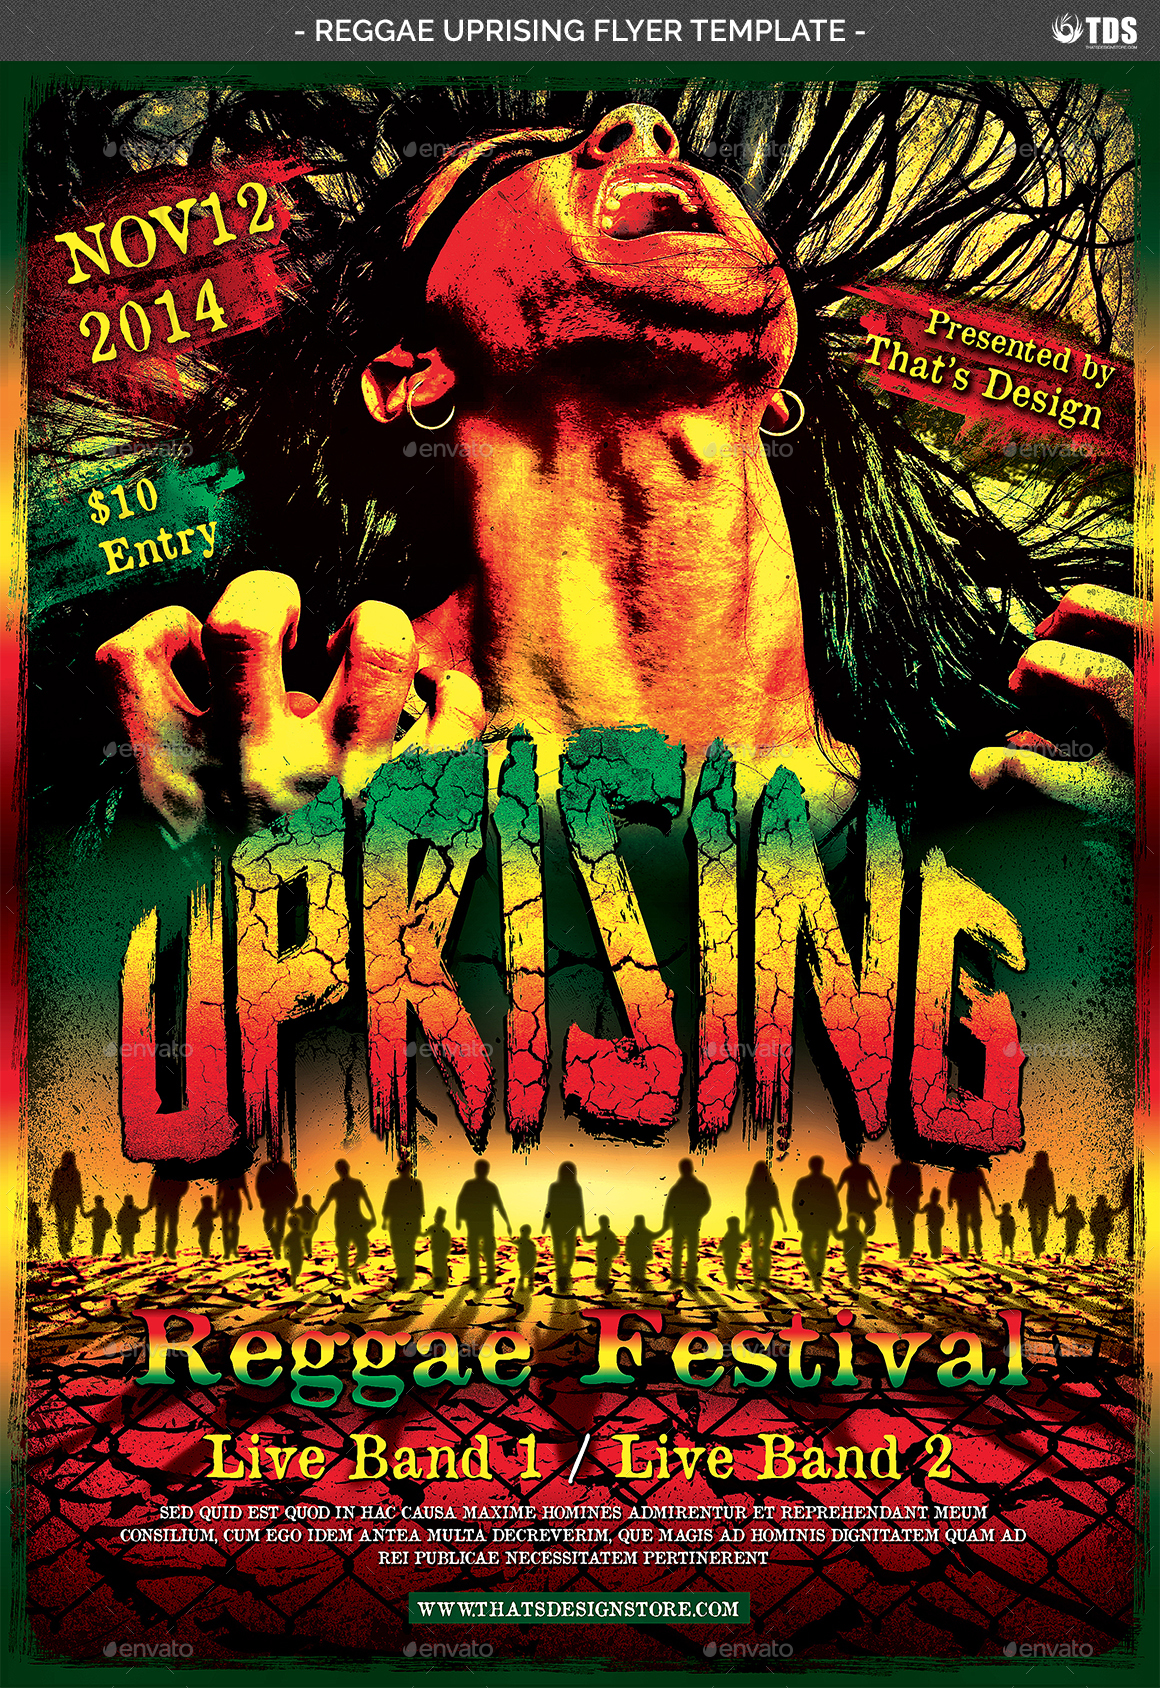 Reggae Uprising Flyer Template By Lou606 GraphicRiver